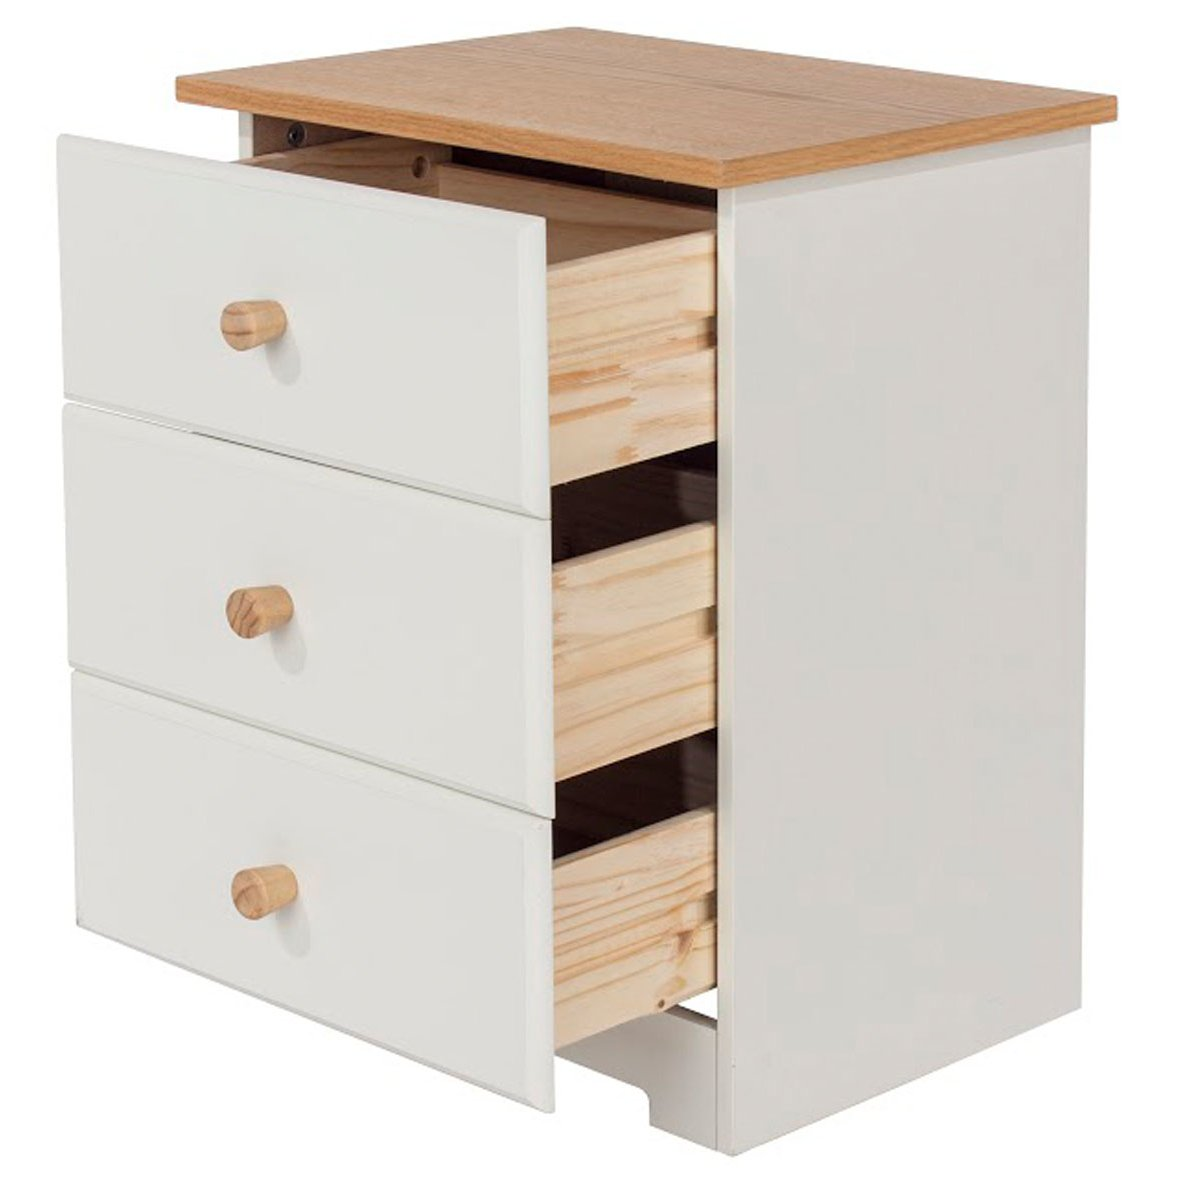 Bedside Tables Light Oak Valufurniture Lisbon 3 Drawer